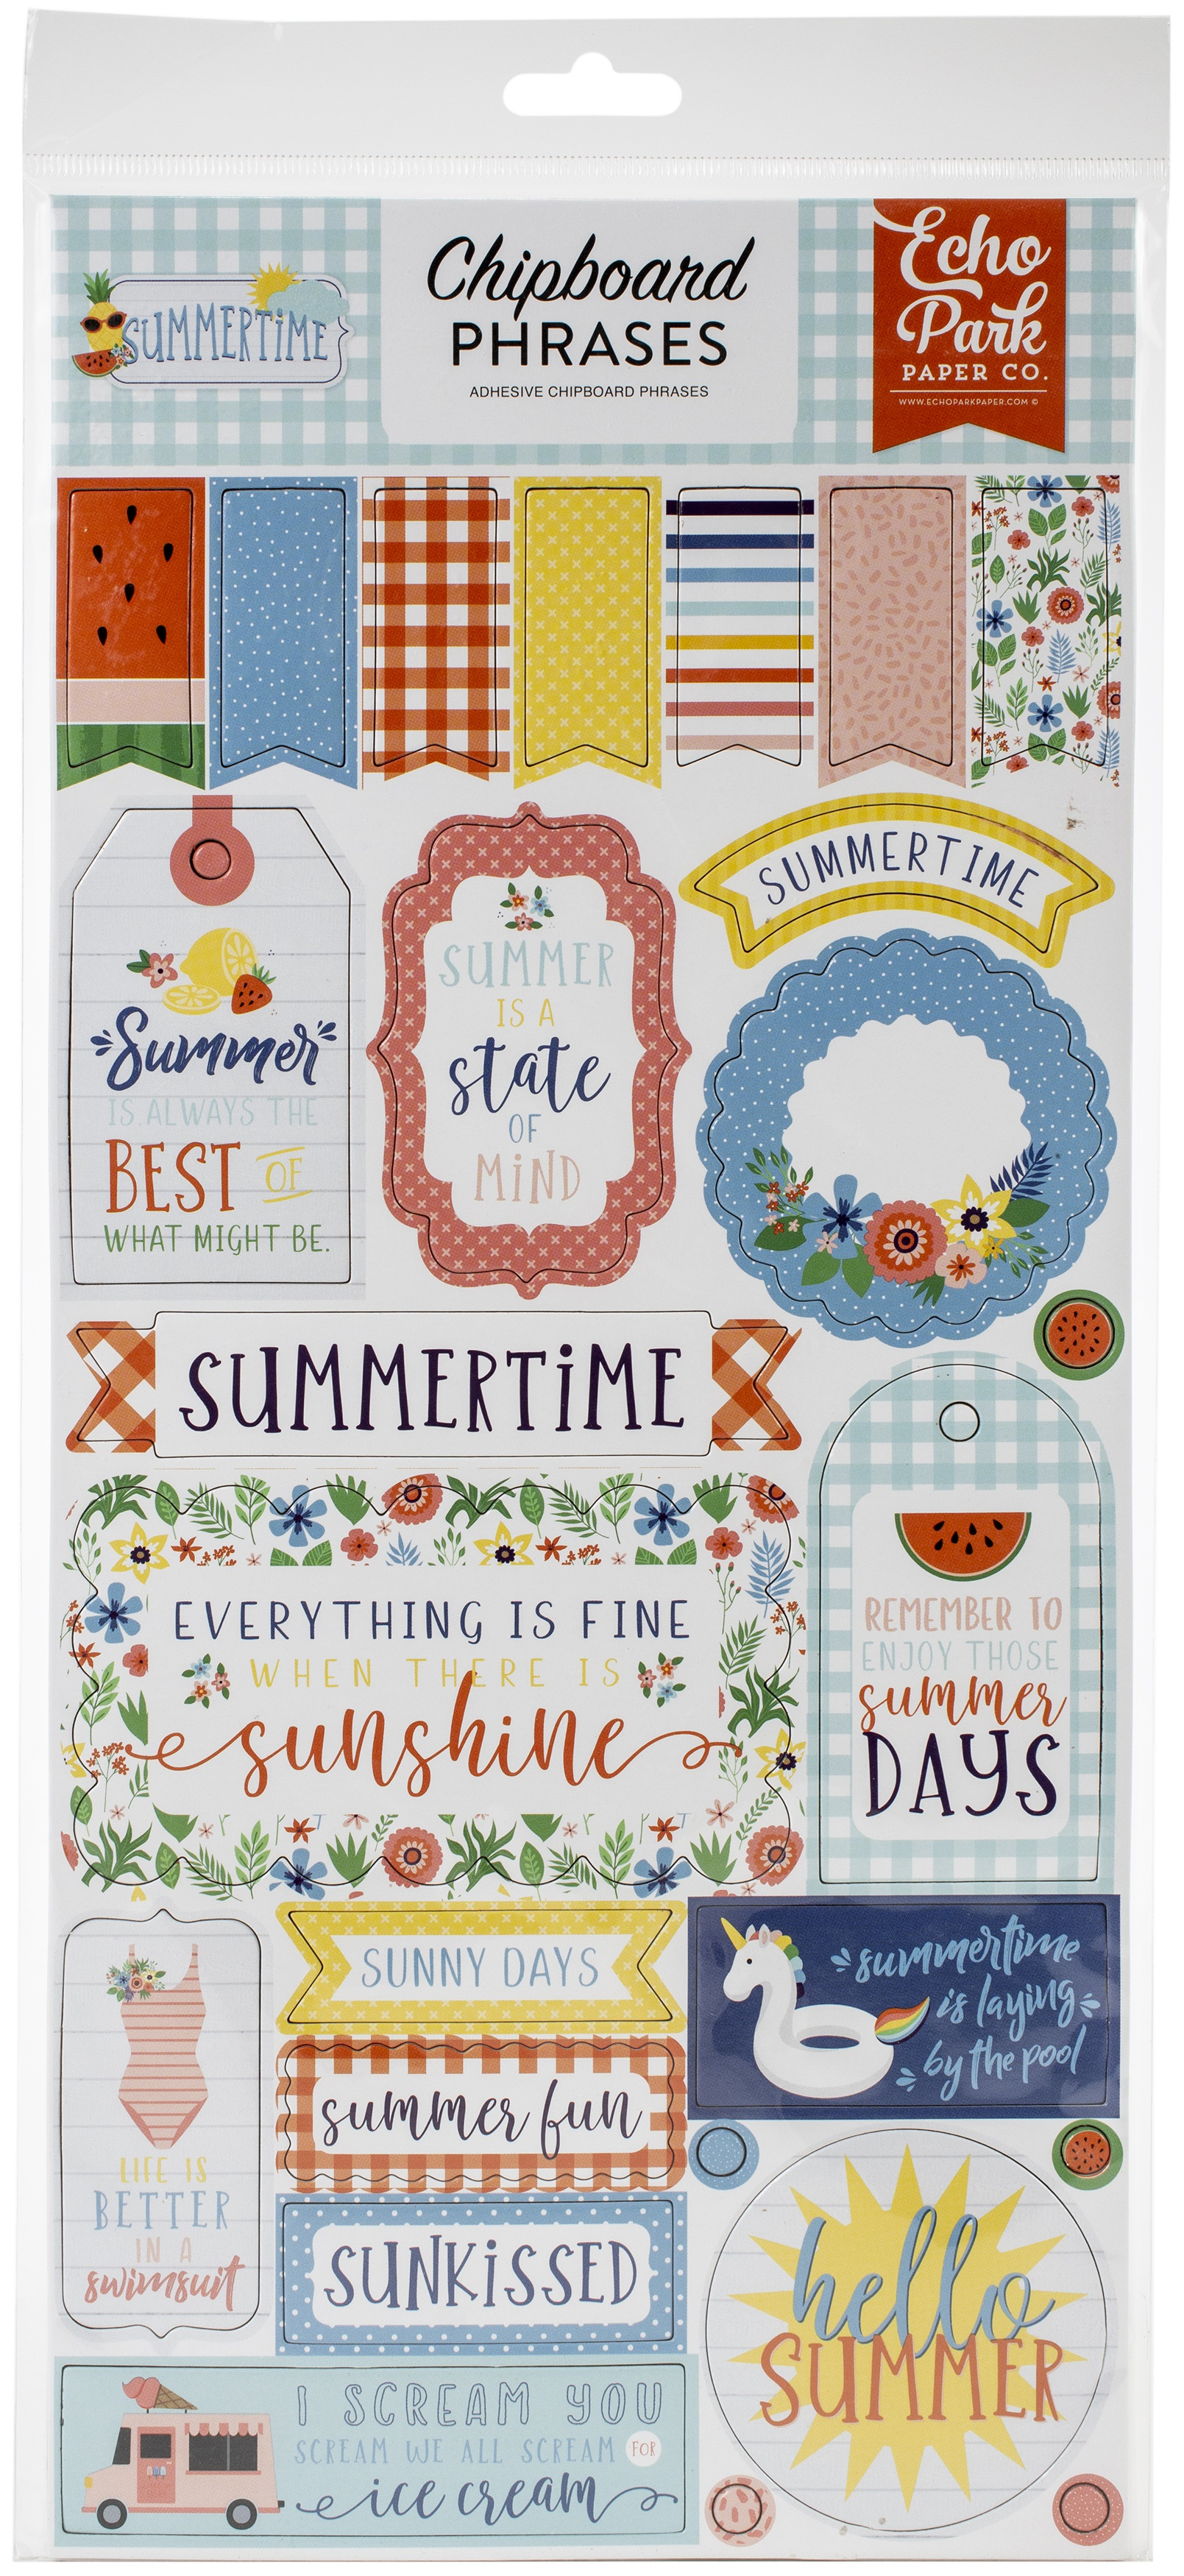 Summertime Chipboard 6X13-Phrases